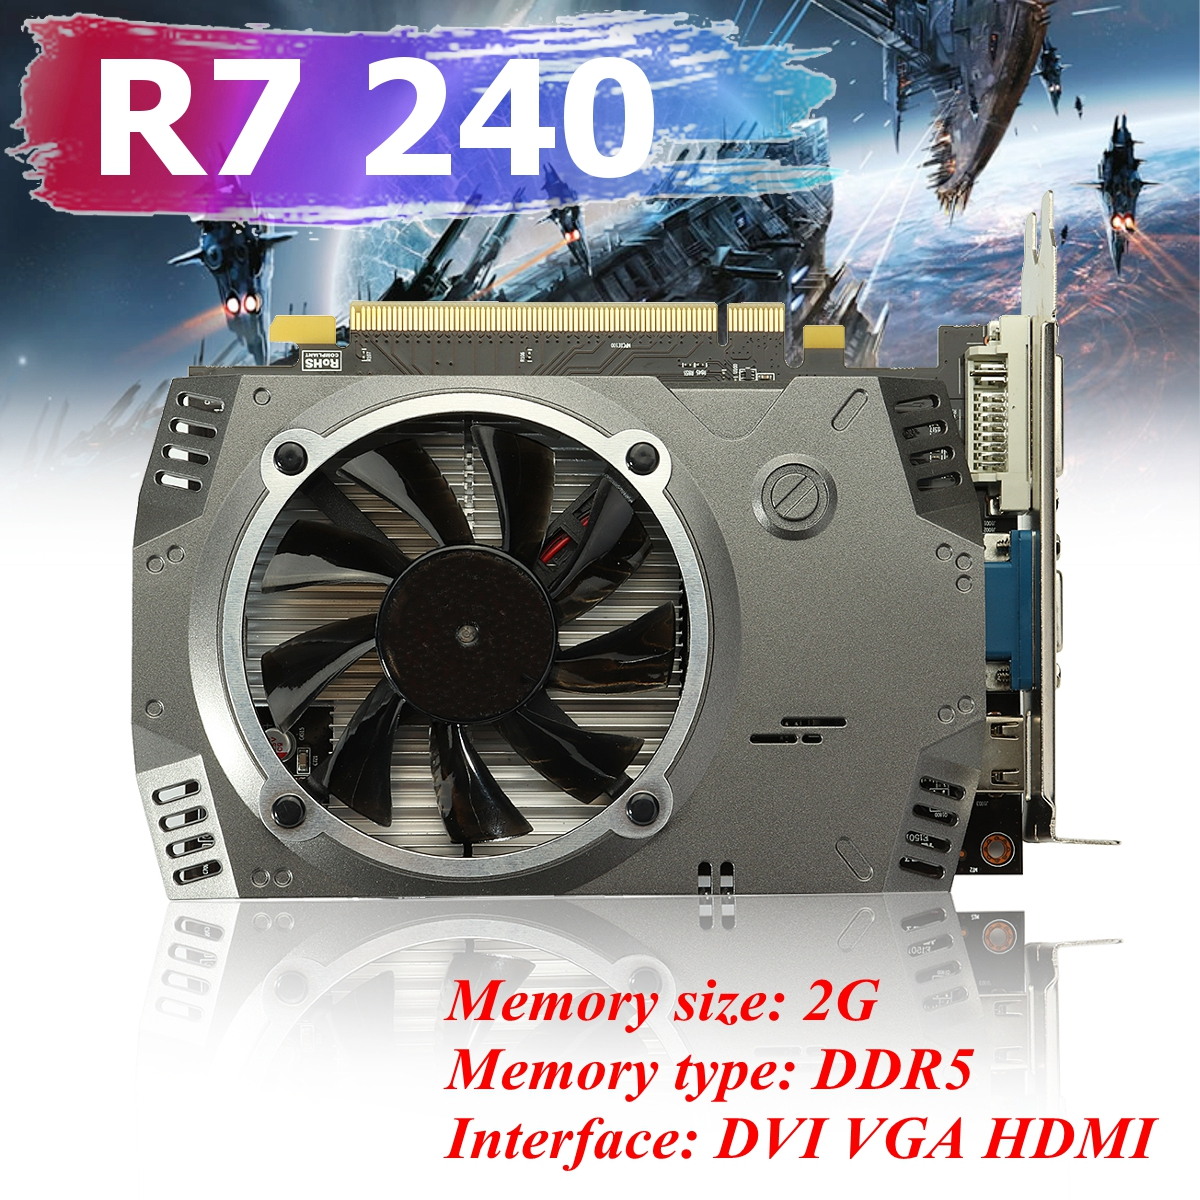 все цены на Original R7 240 GPU 2G GDDR5 128bit Gaming Desktop Graphics Card PC Video Graphics Cards Support VGA/DVI/HDMI онлайн